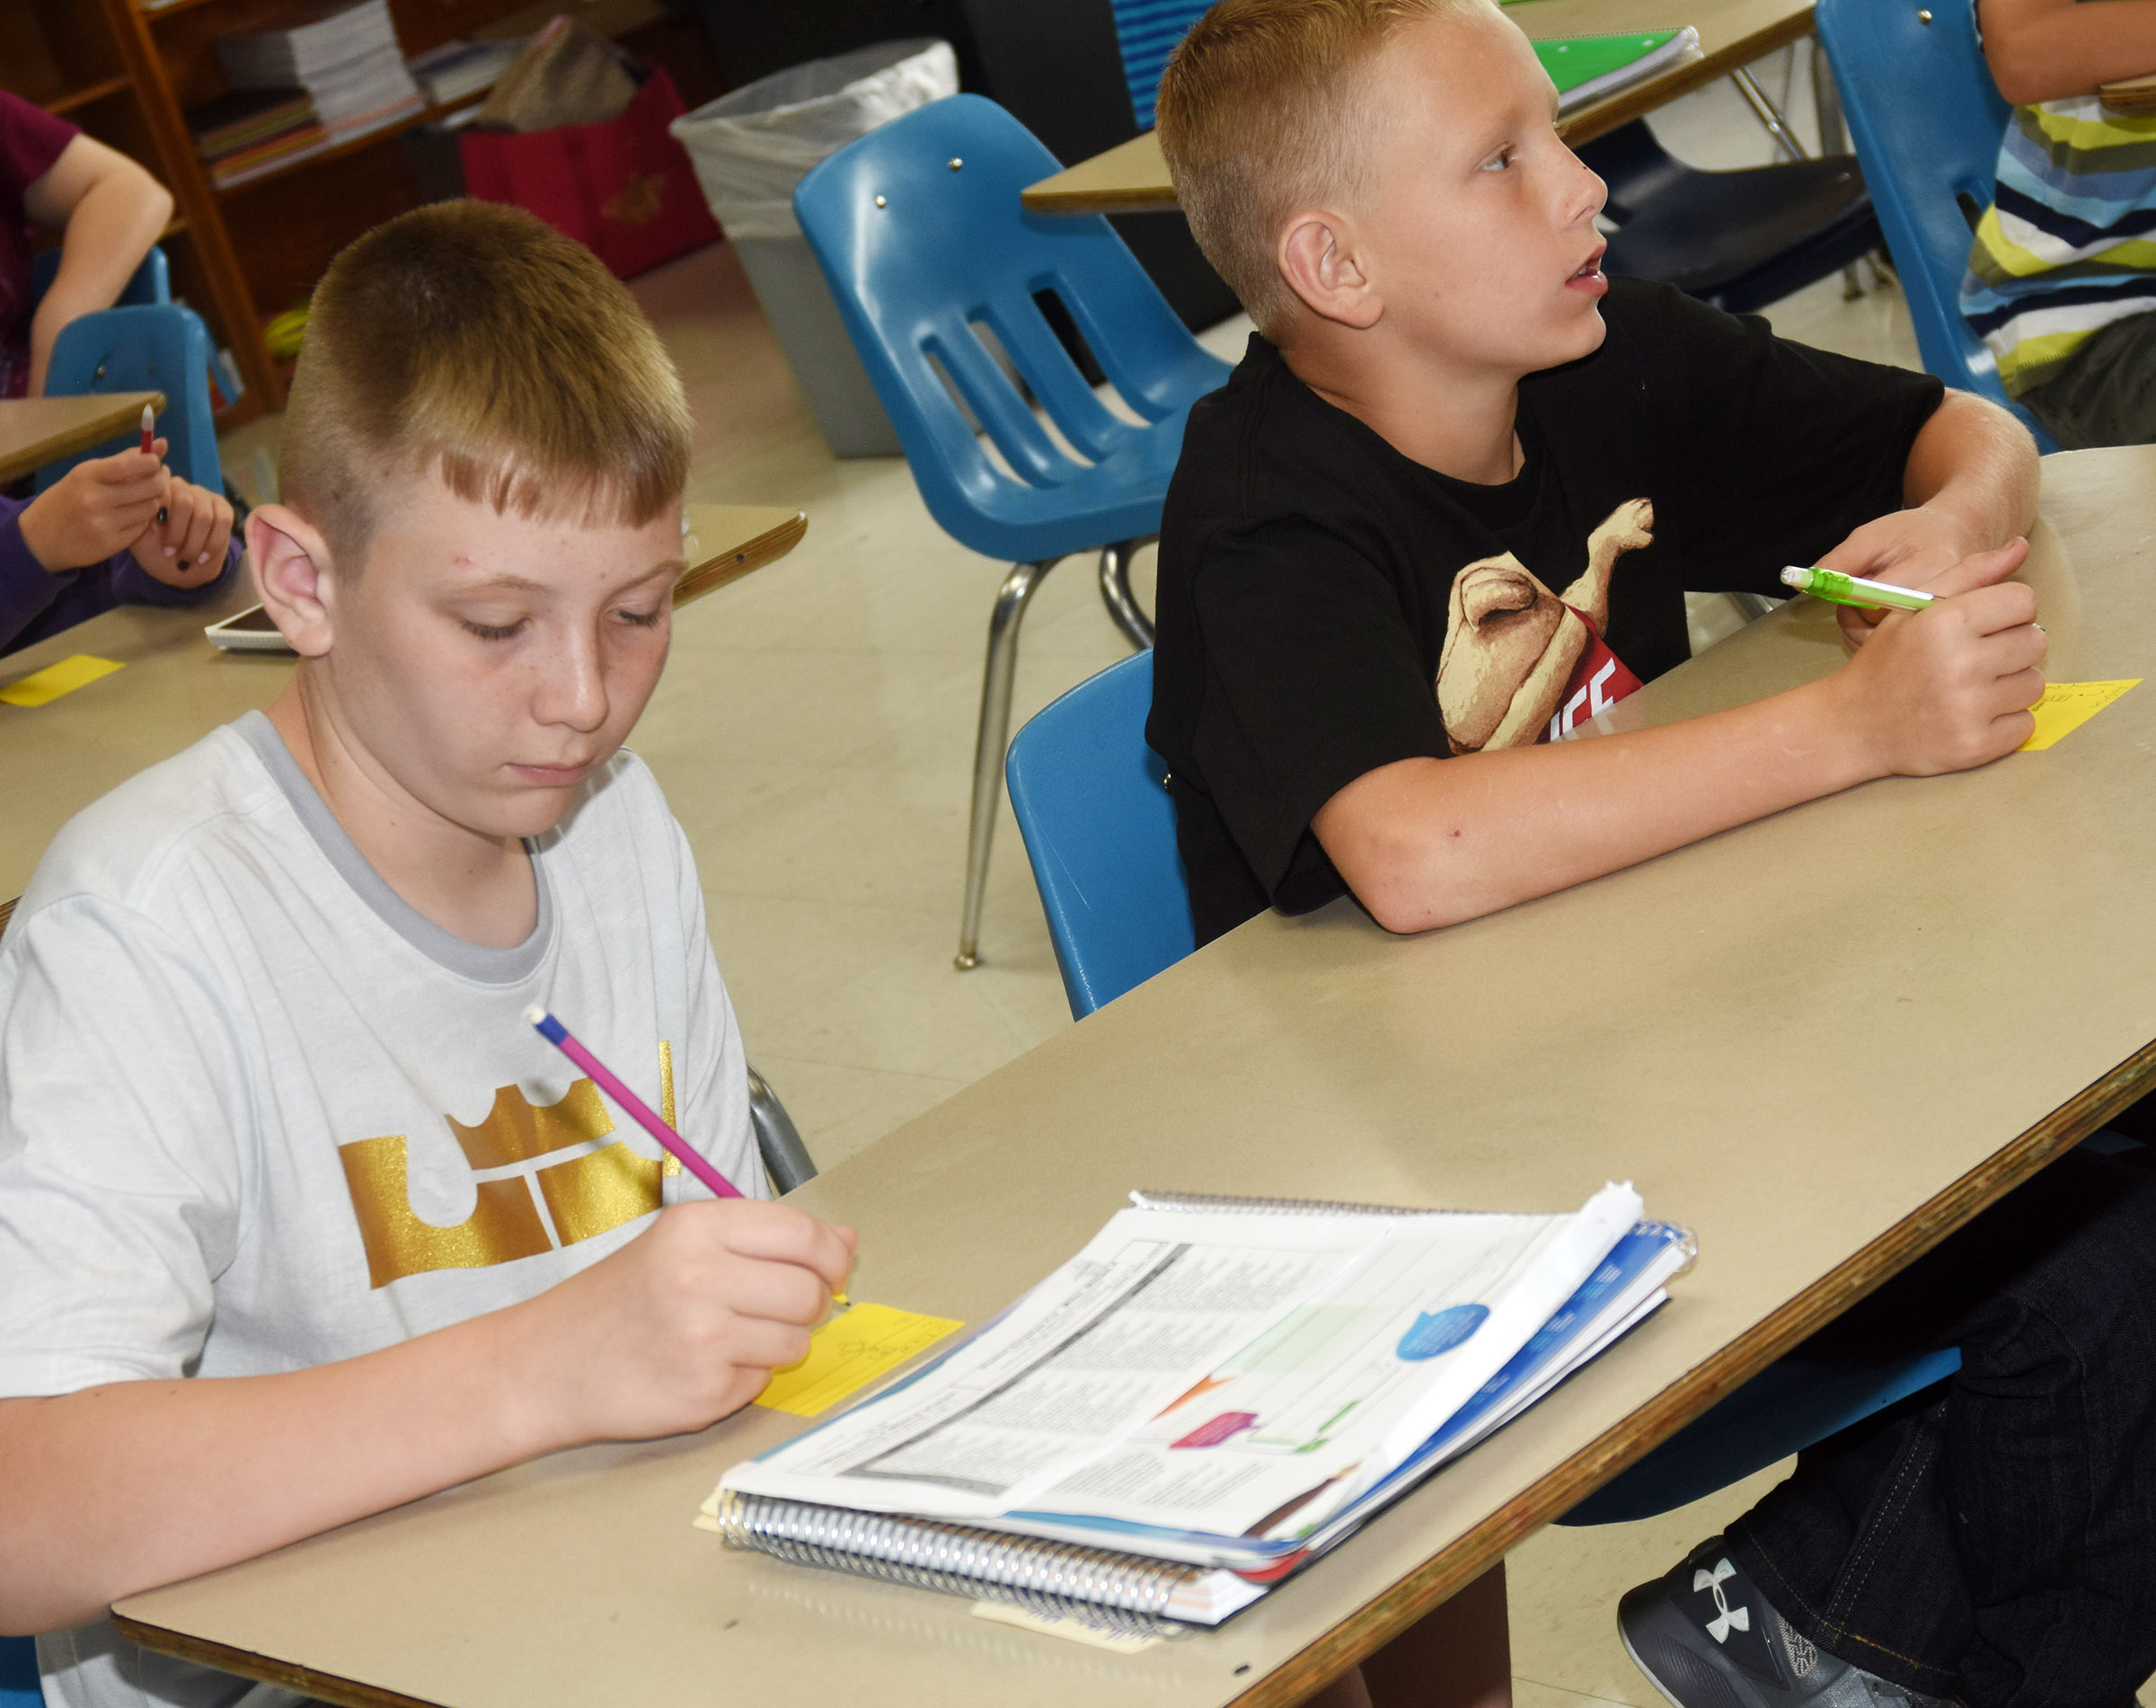 Campbellsville Middle School sixth-graders Kaleb Miller, at left, and Arthur Singleton answer questions in their math class.